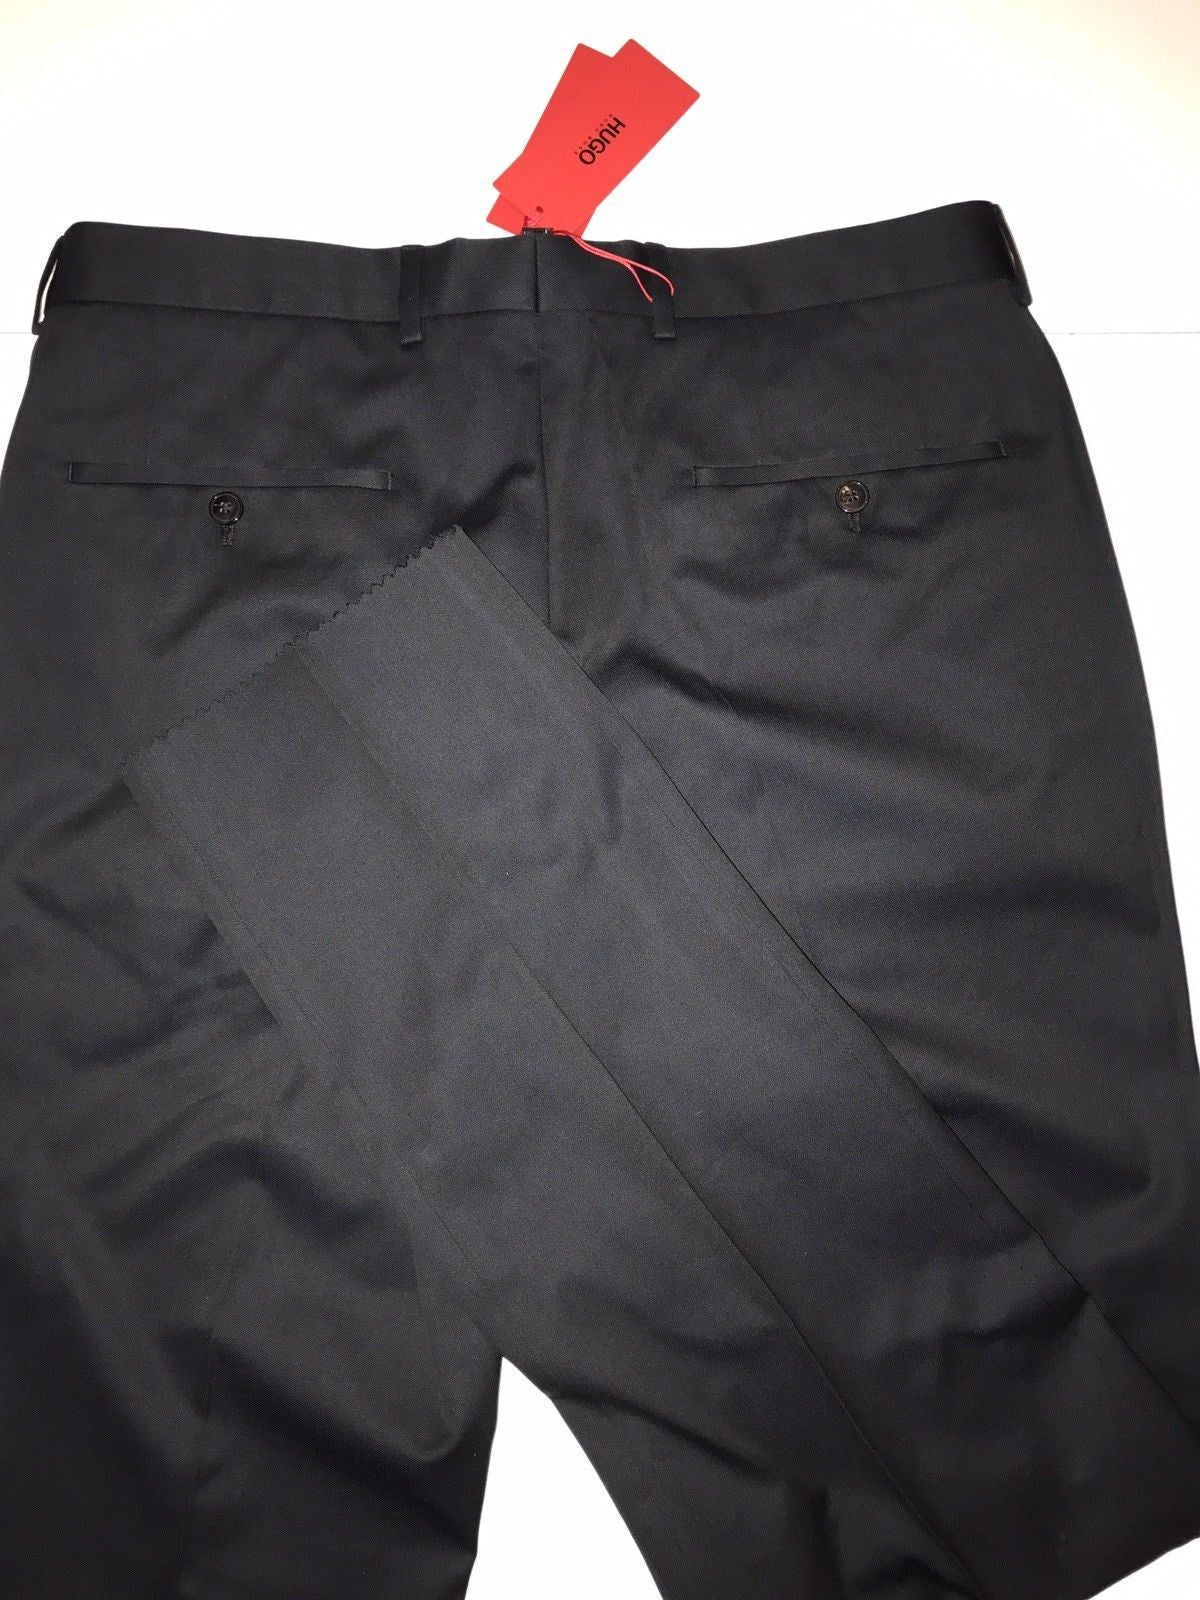 722f40e64 NWT $255 Boss Hugo Boss Genesis Mens Cotton Dark Blue Dress Pants Size 36R  US